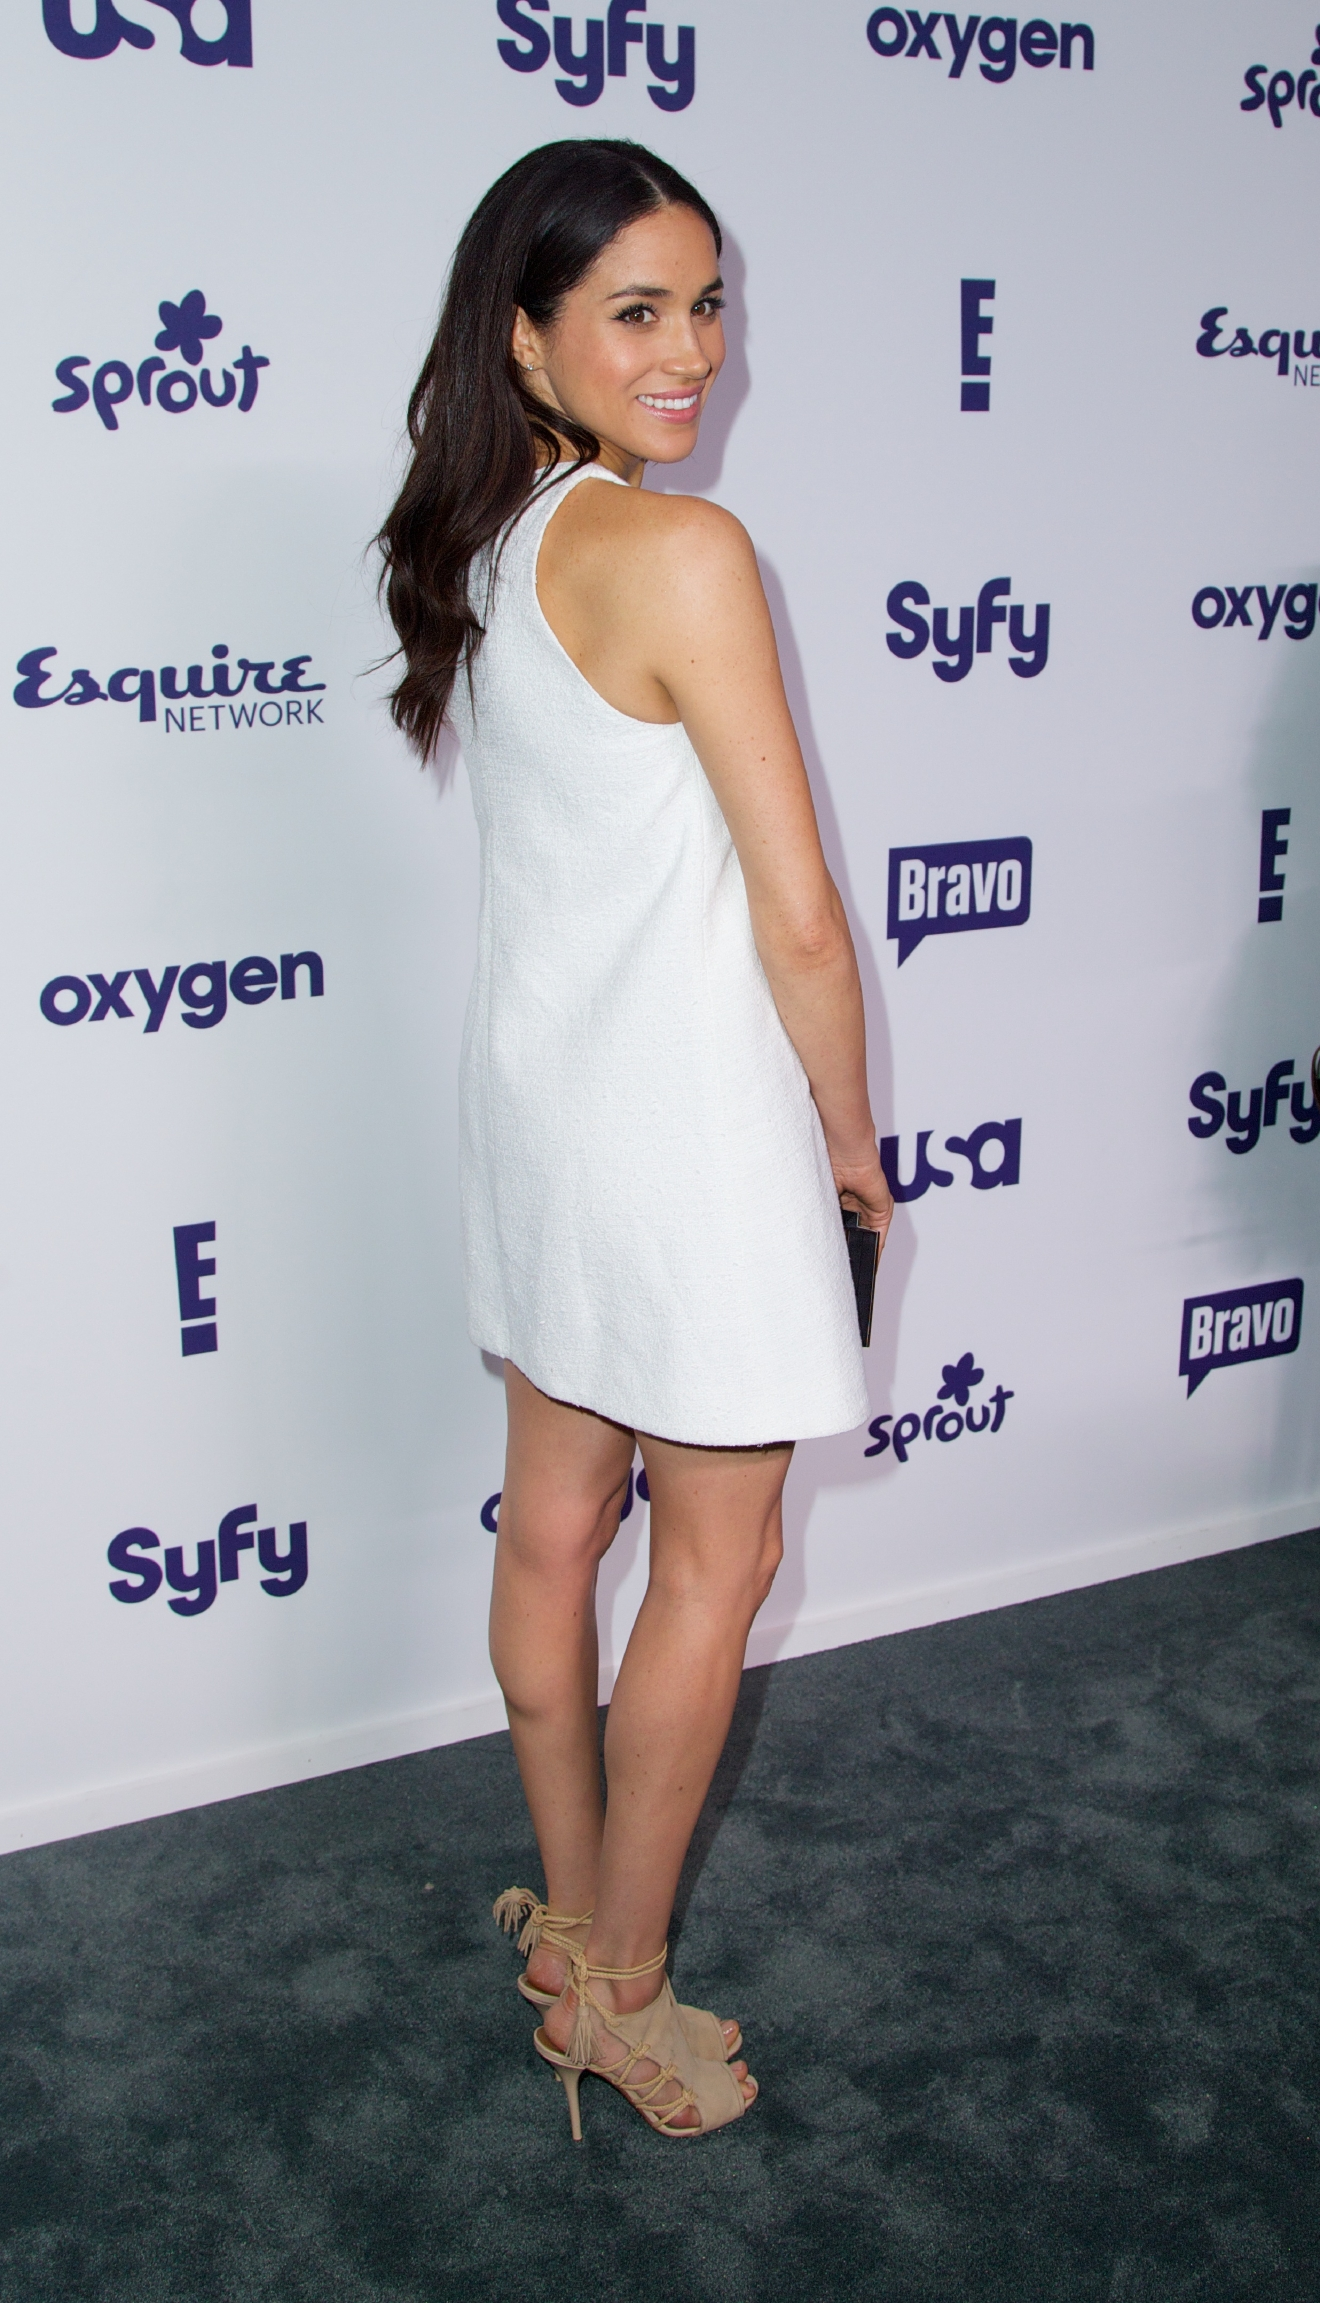 NBCUniversal Cable Entertainment presents An All together Upfront celebration at Javits Center in New York City  Featuring: Meghan Markle Where: New York City, New York, United States When: 15 May 2014 Credit: Alberto Reyes/WENN.com